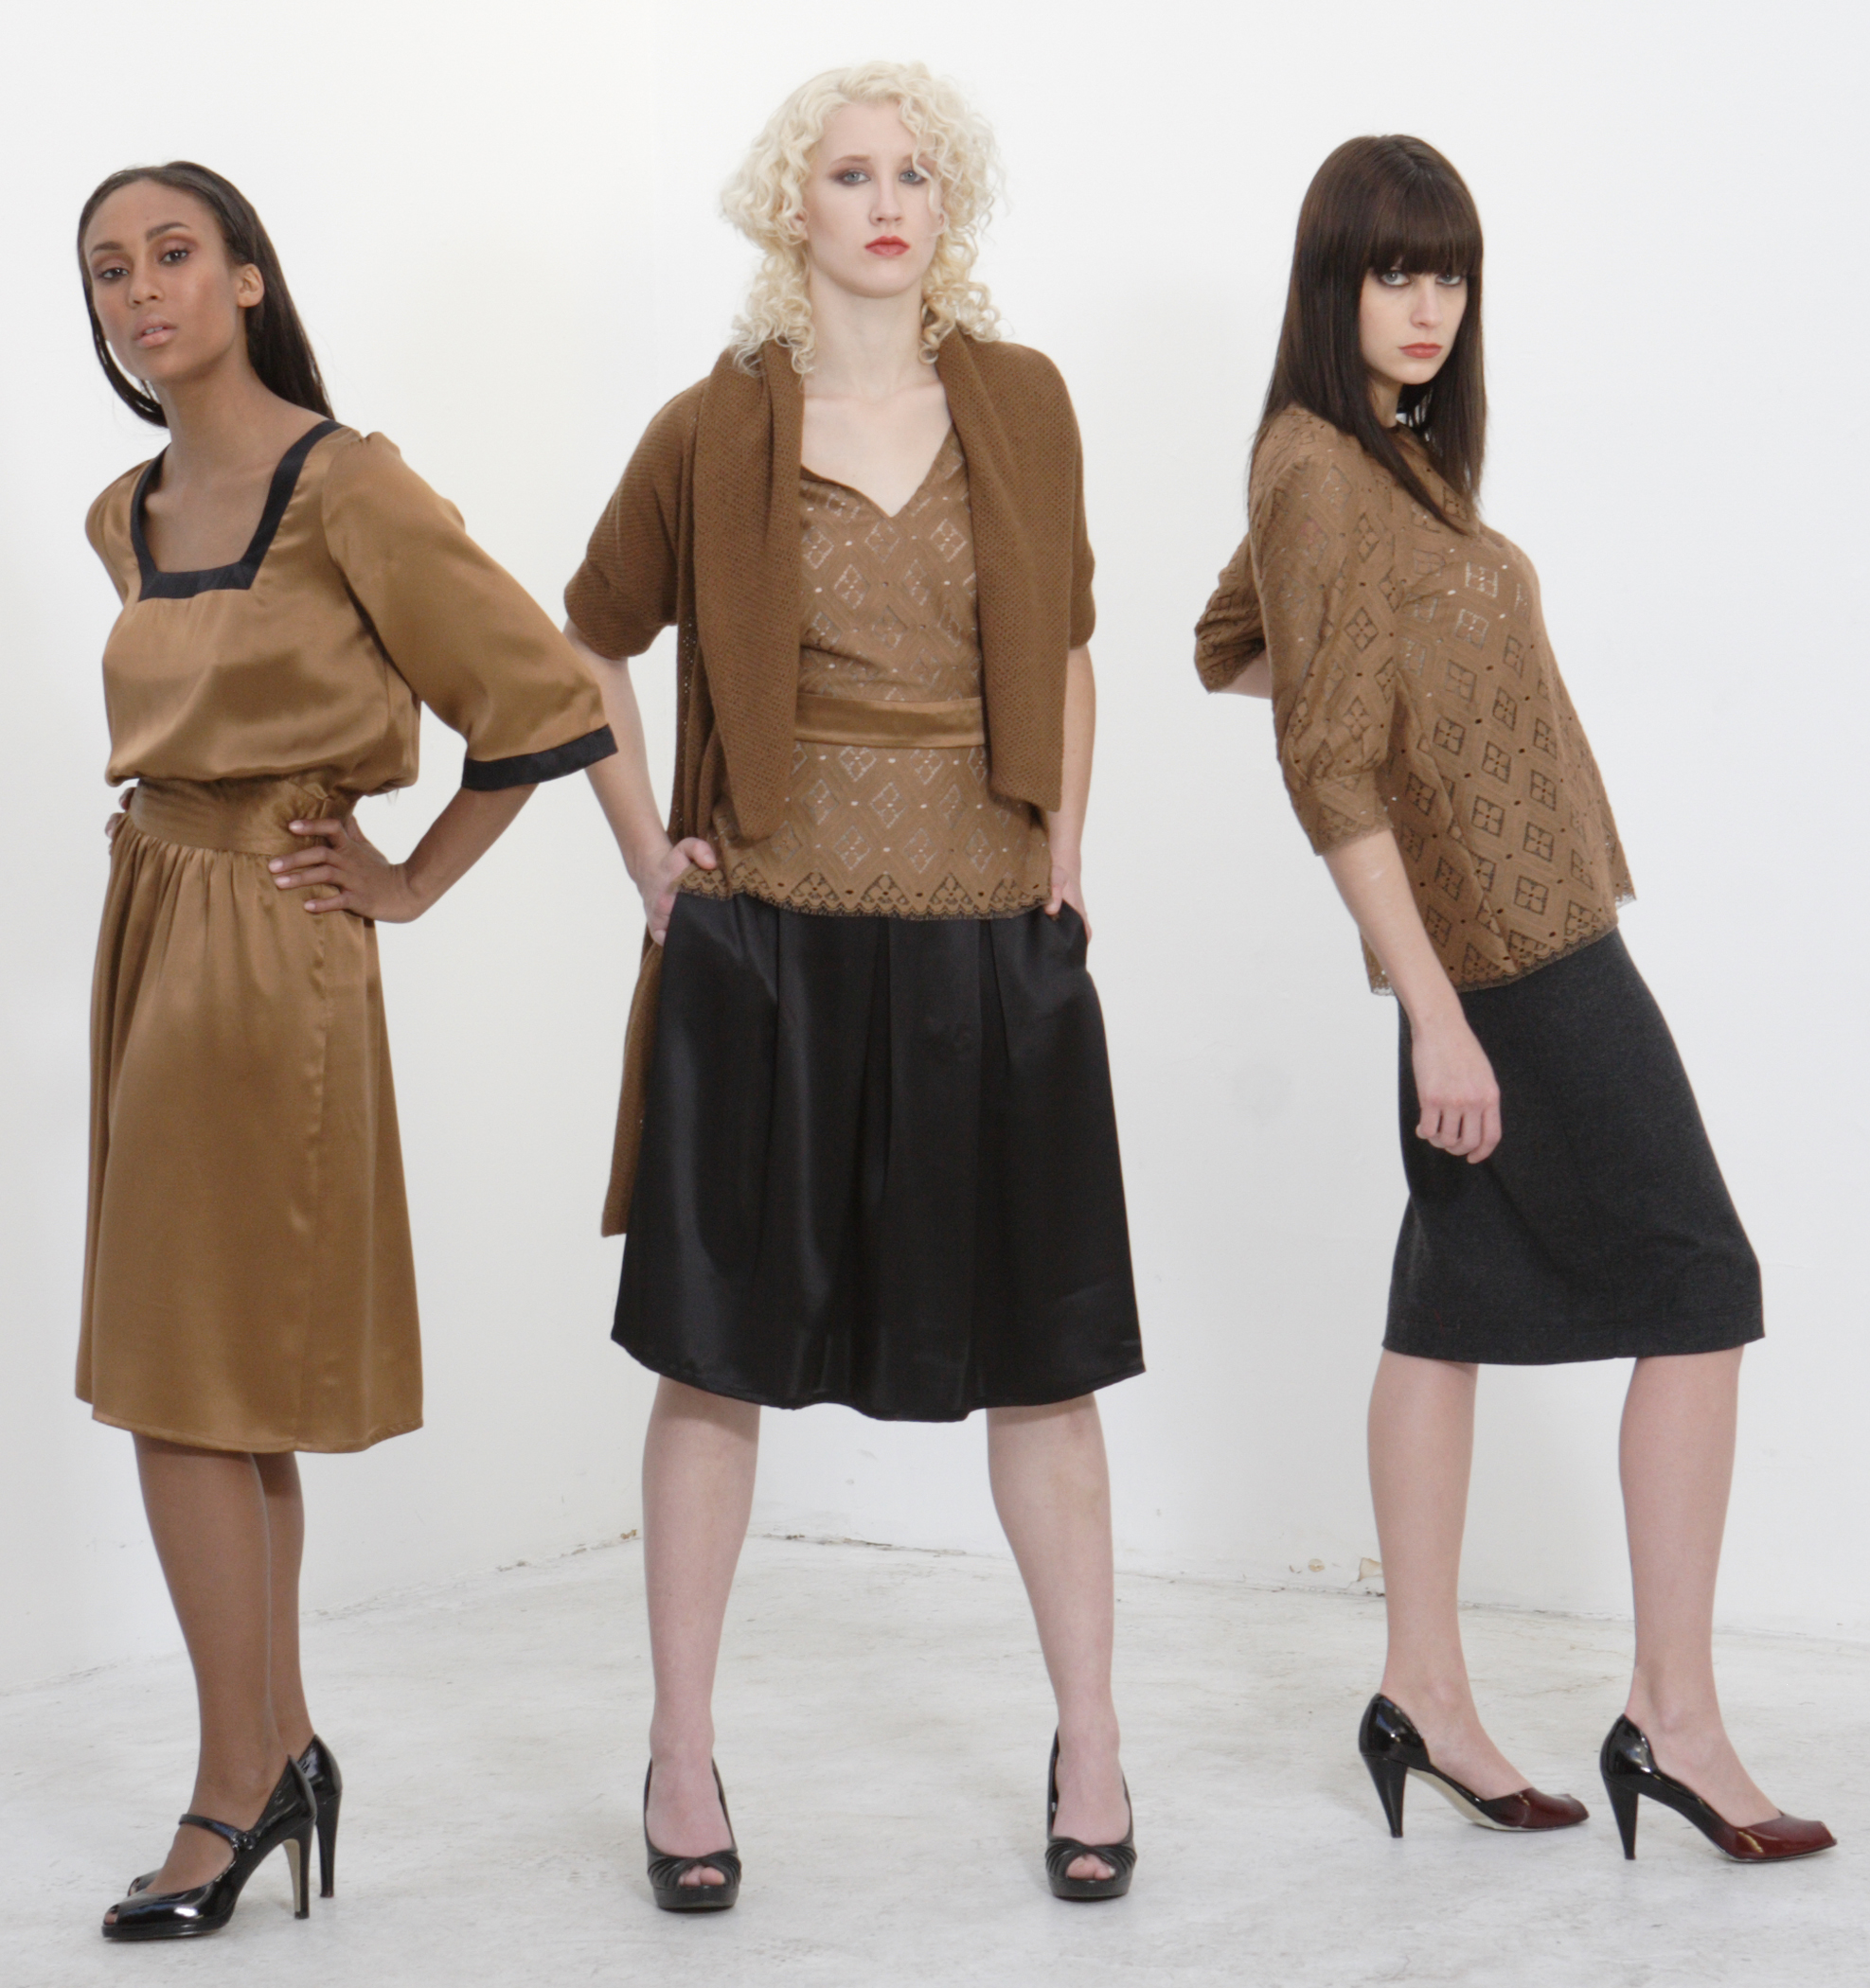 Silk Charmeuse Square Cut Dress w/ Quilt Stitch Waist  Woll Cashmere Shawl Sweater  French Lace V-Neck Top Lined in Silk  Silk Charmeuse High Waist Pleat Skirt.           French Lace Full Cut Shealth Blouse.  Wool Flannel High Waist Pencil Skirt.